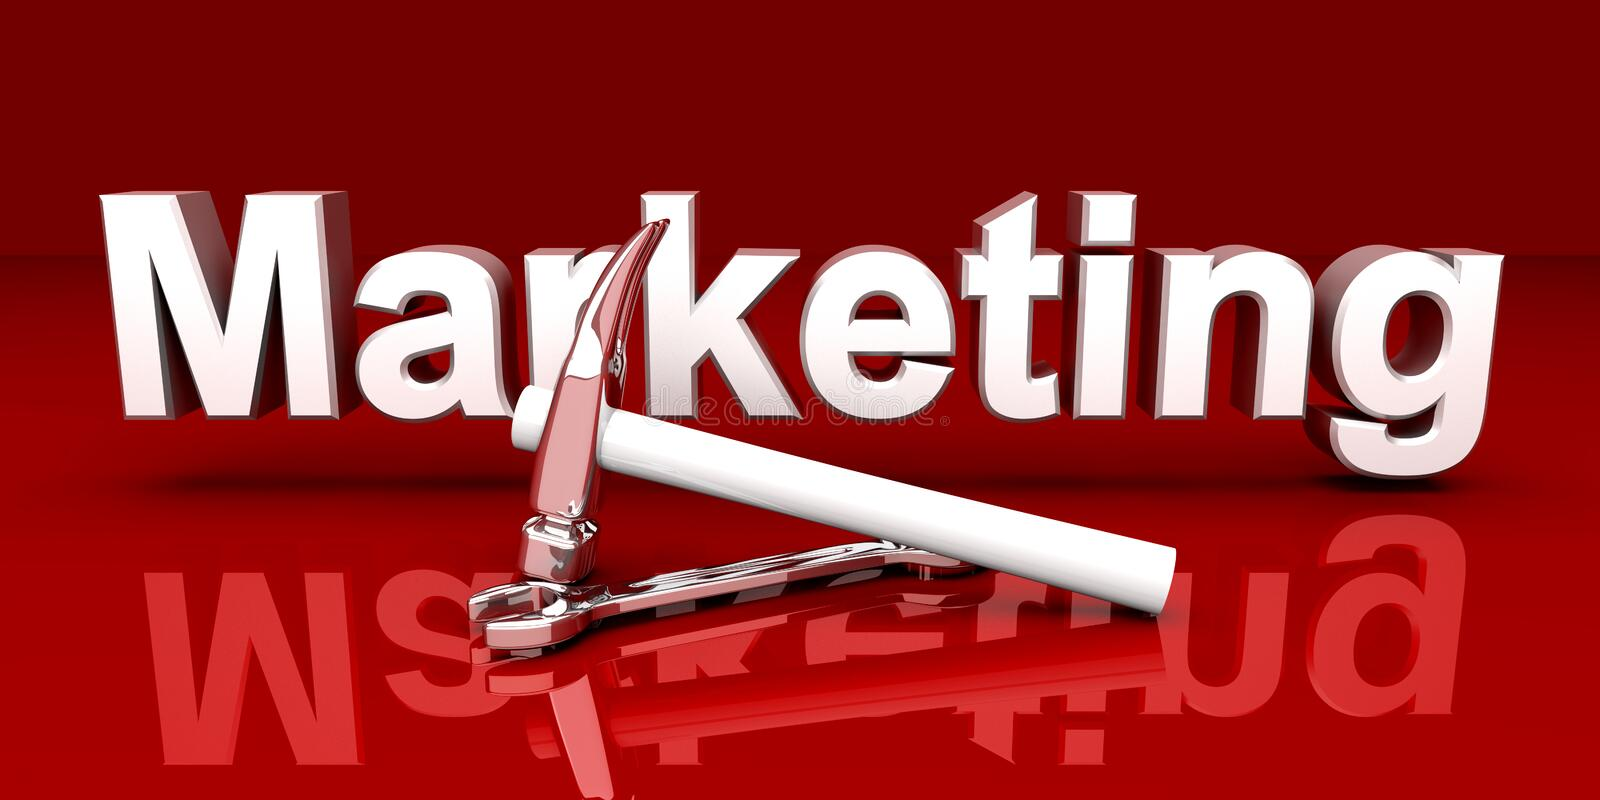 Marketing Tools. Tools for Marketing. 3D rendered Illustration. Red environment royalty free illustration